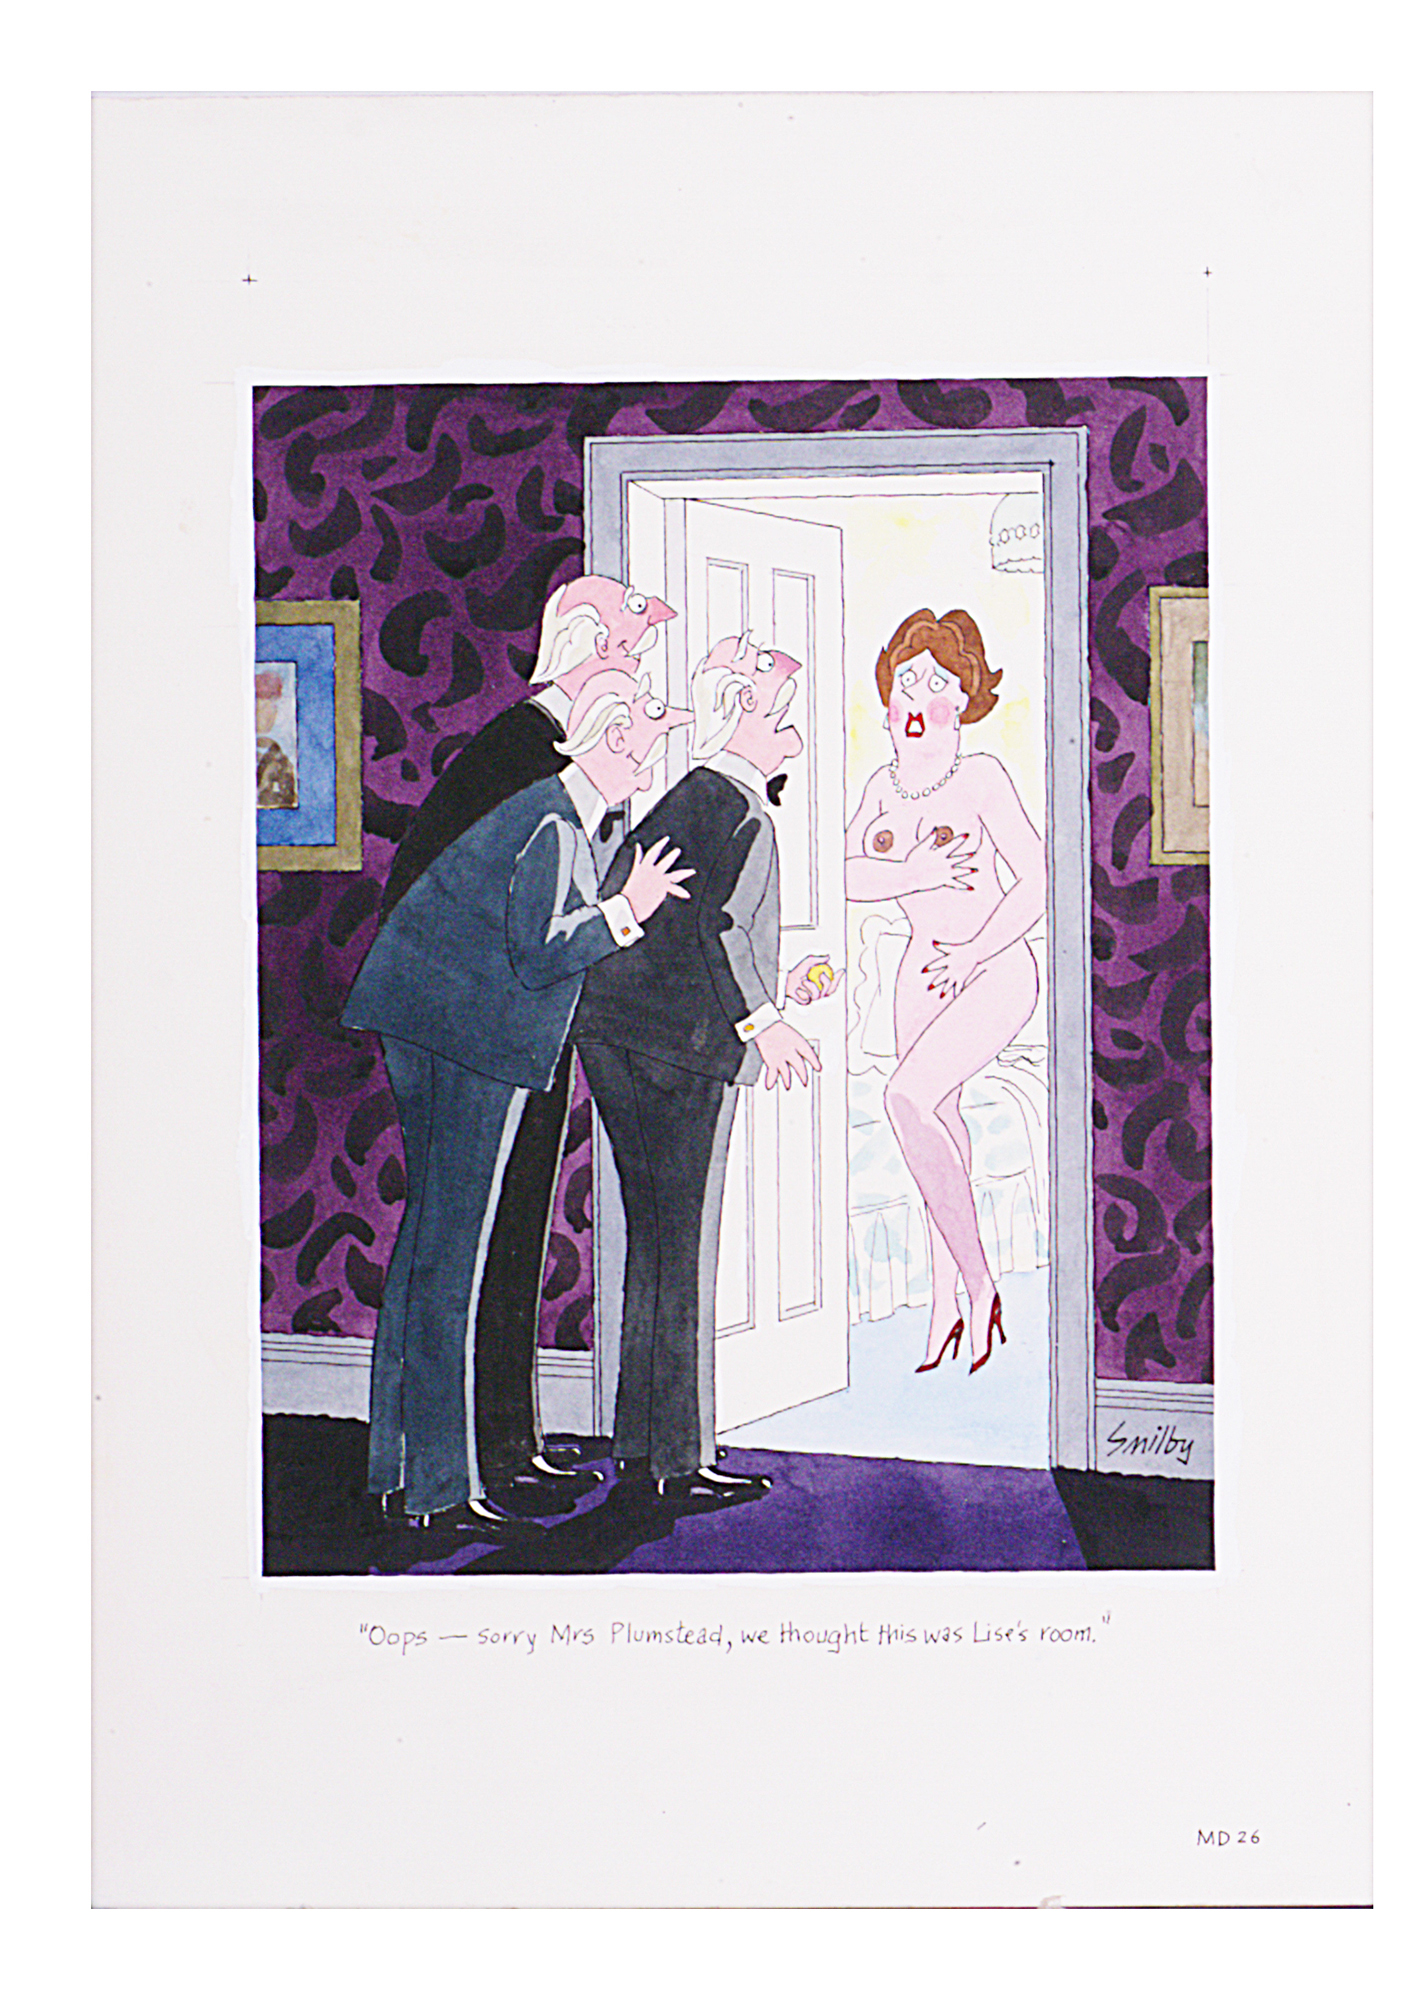 Lot 20 - Smilby, Francis Wilford-Smith 'Oops - sorry Mrs Plumstead, we thought this was Lise's room'